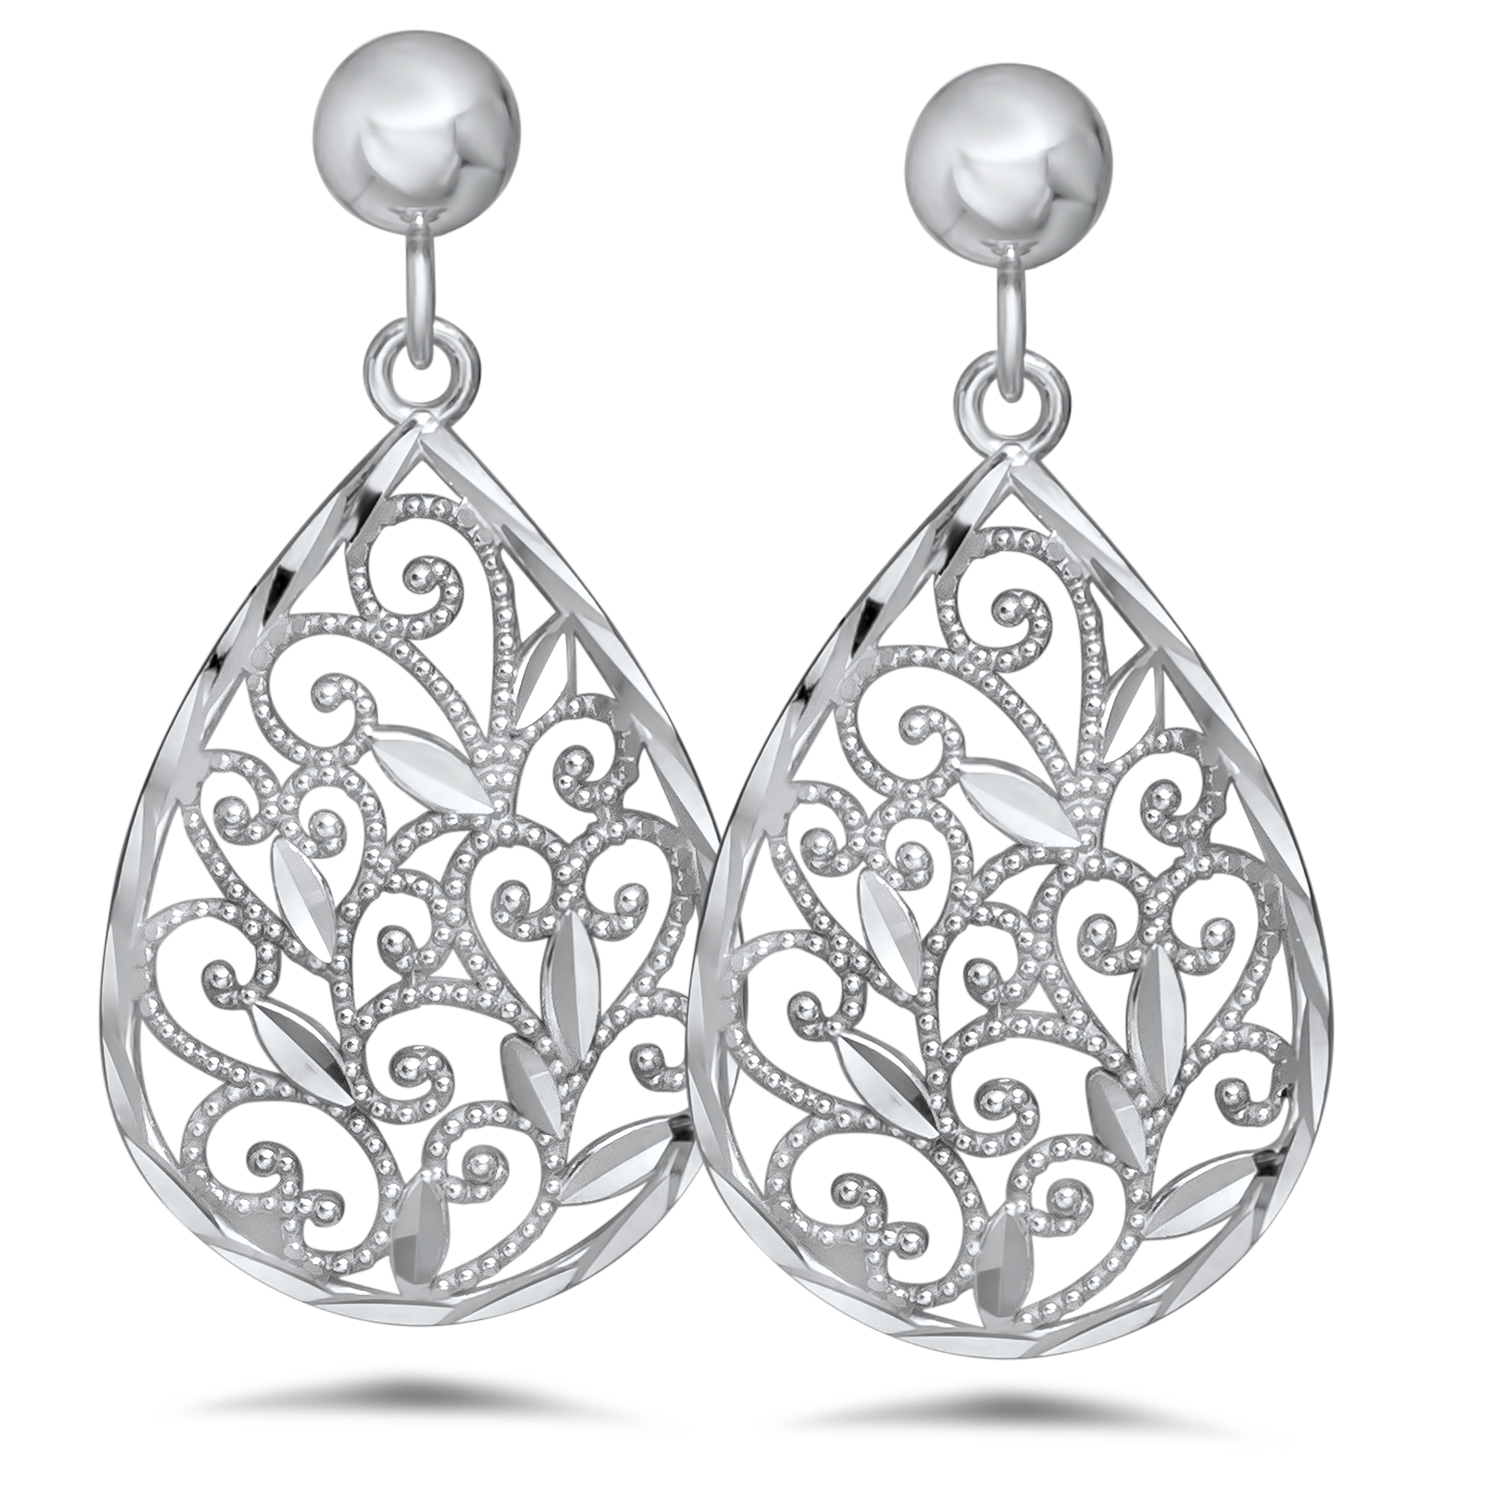 14k White Gold Polished Filigree Teardrop Post Dangle Earrings